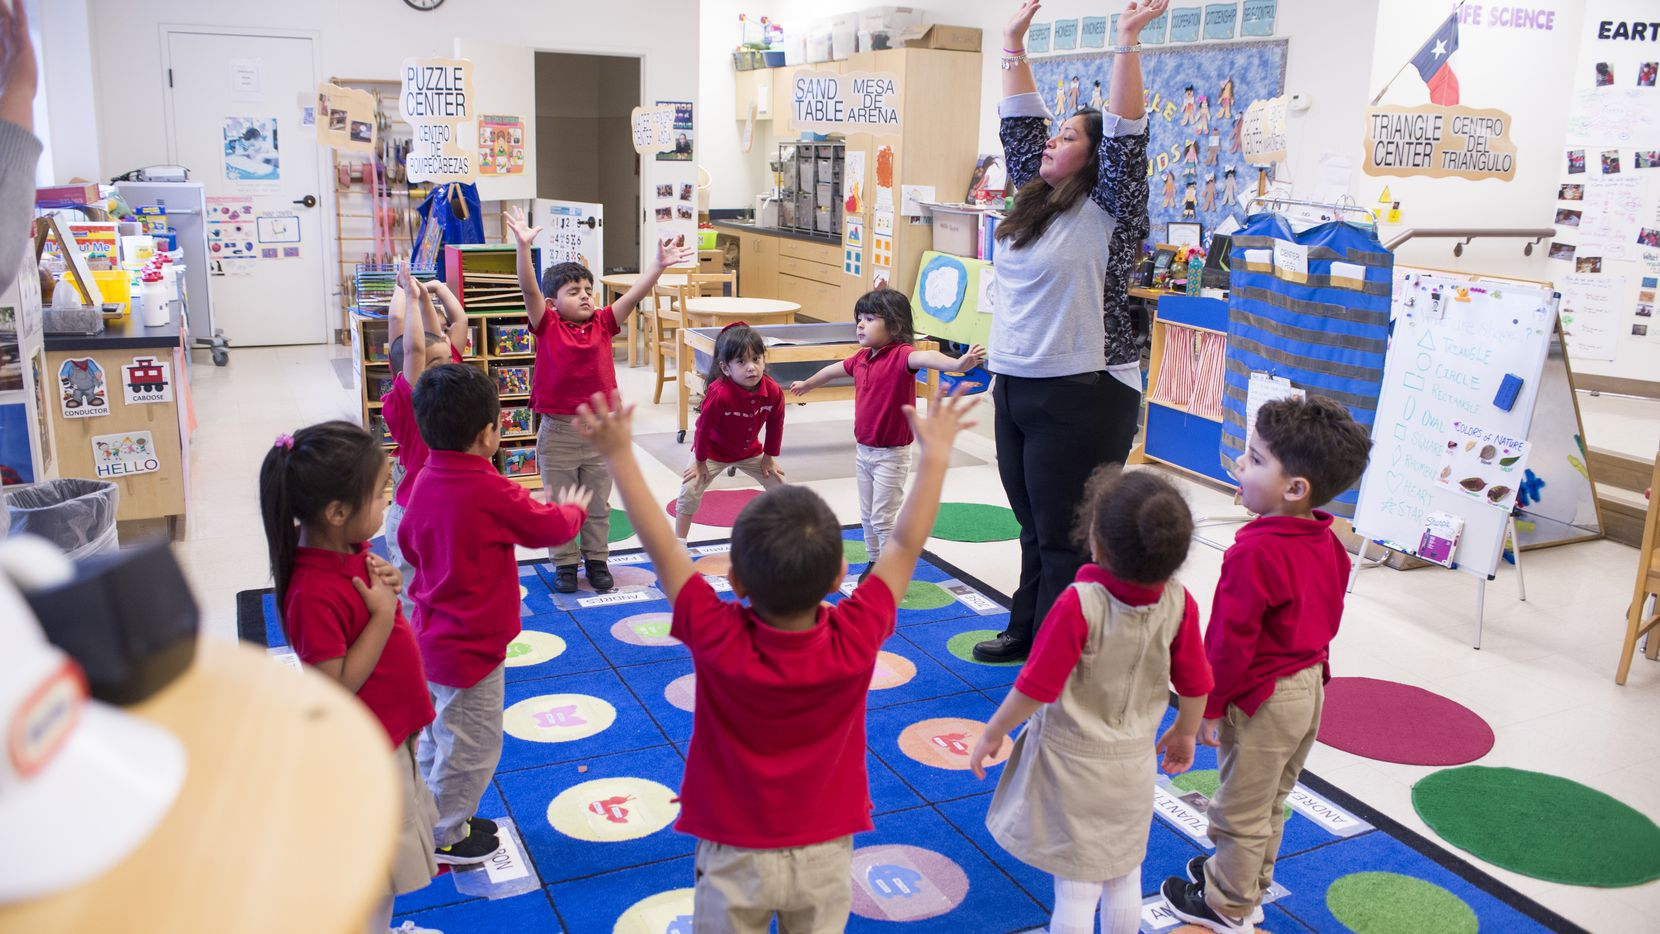 Pre-K teacher Juanita Cabrales leads her 3-year-old students in breathing exercises at the Momentous School.